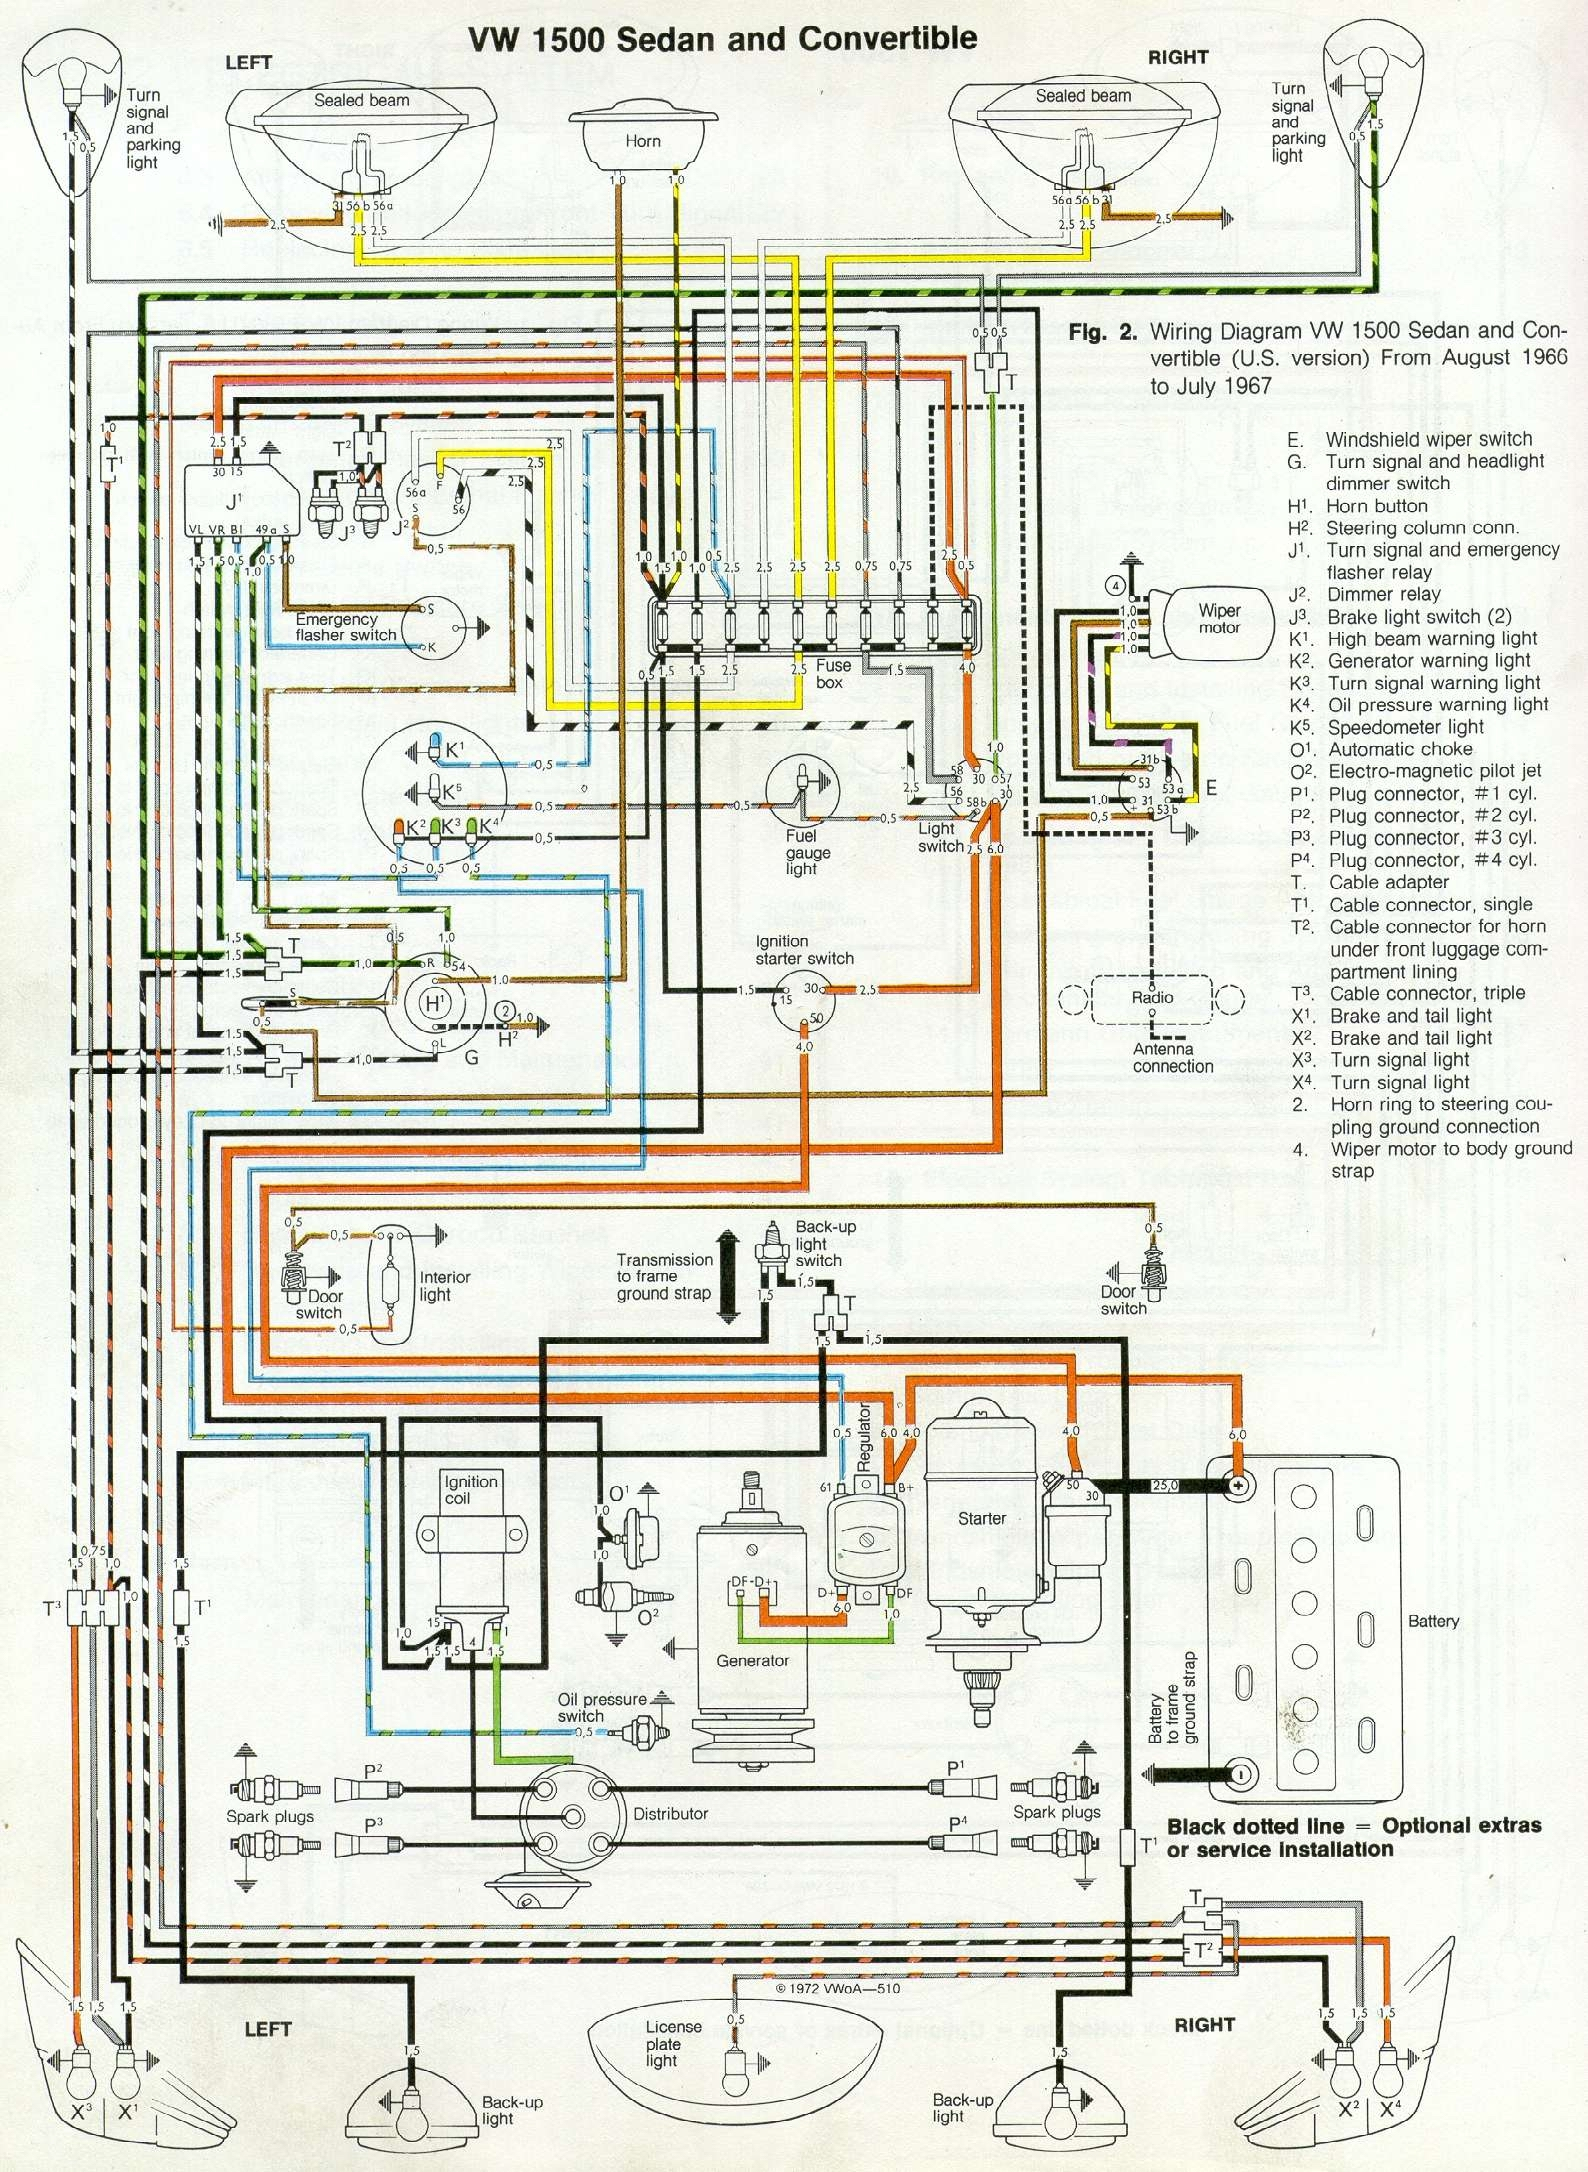 1967 Vw Beetle Wiring Diagram Archive Of Automotive 2013 Mazda 3 66 And 67 Rh 1967beetle Com Engine